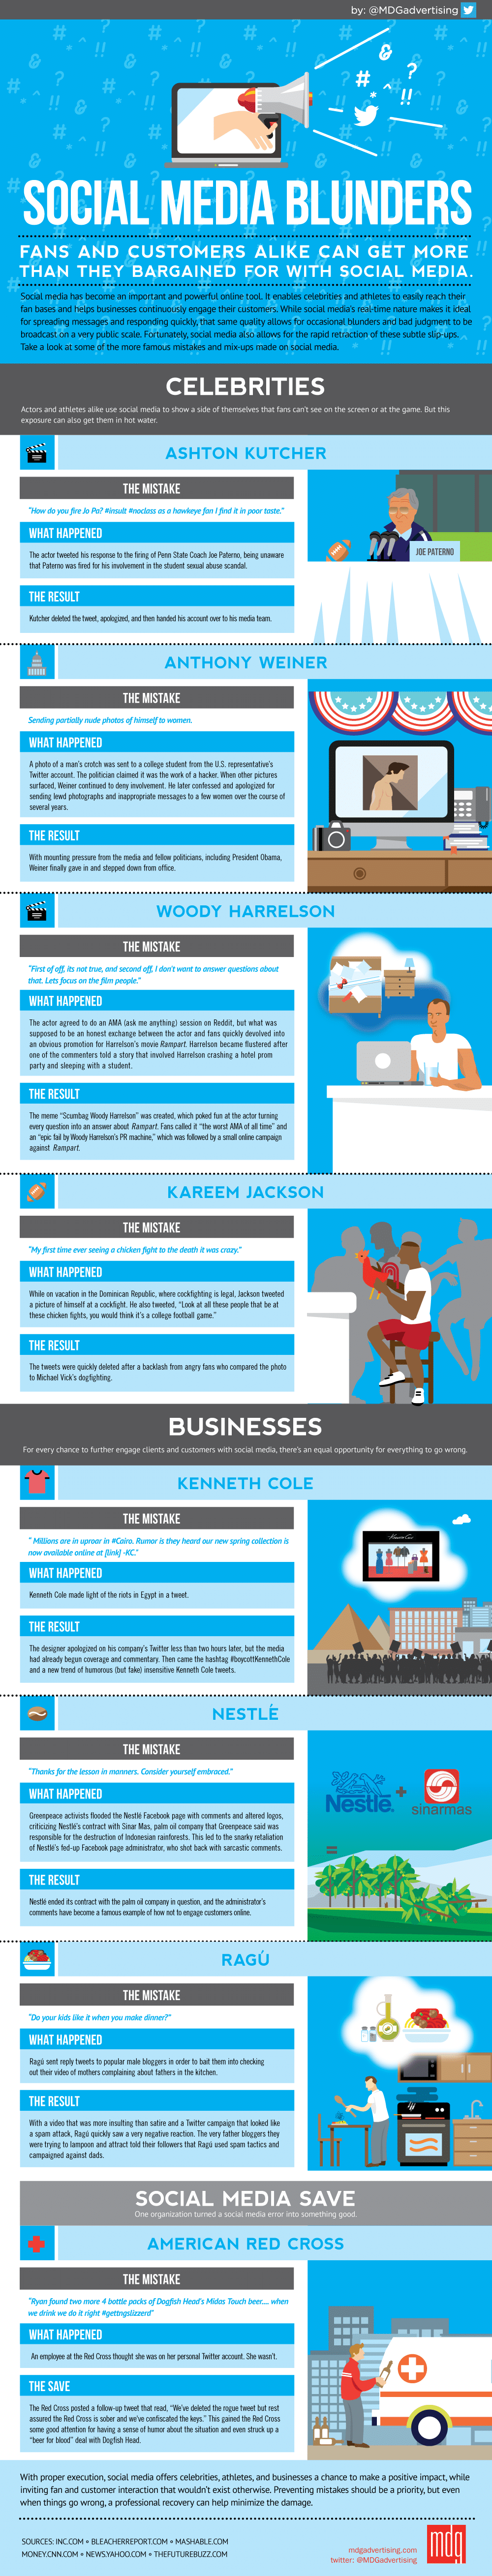 blunders-in-social-media-infographic